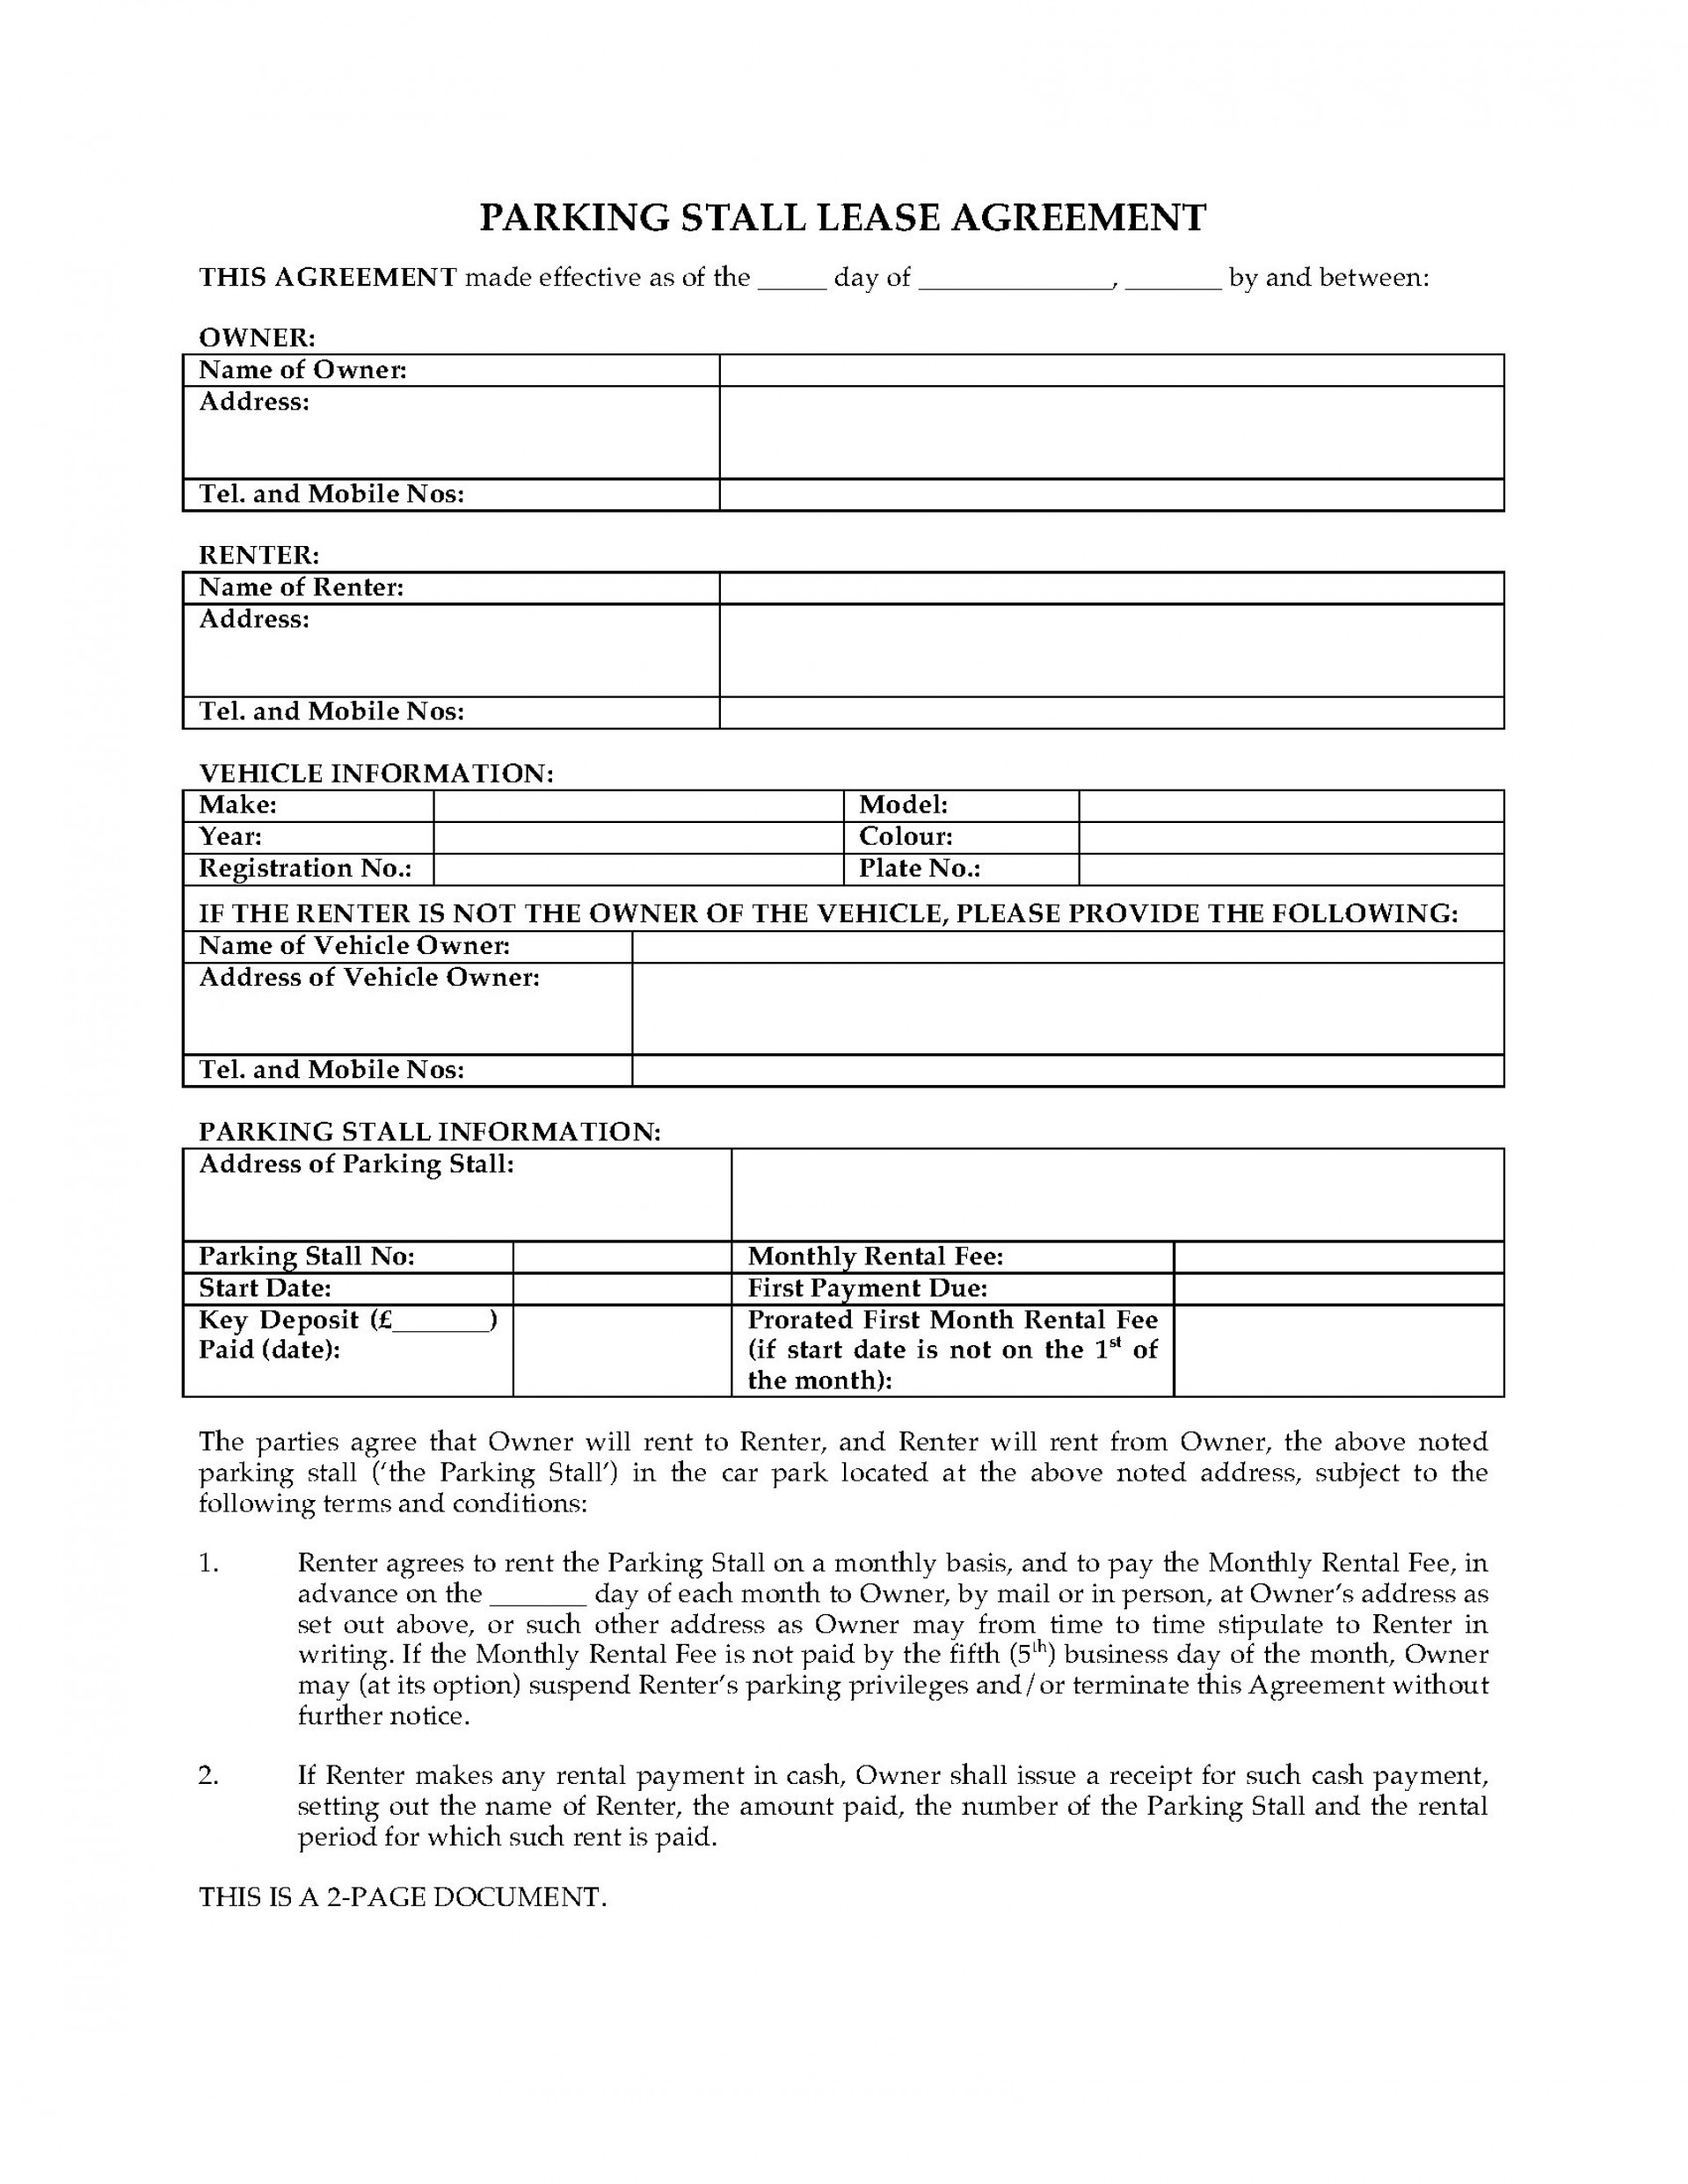 003 Exceptional Car Lease Agreement Template High Definition  Vehicle Ontario Rental Singapore Leasing1920